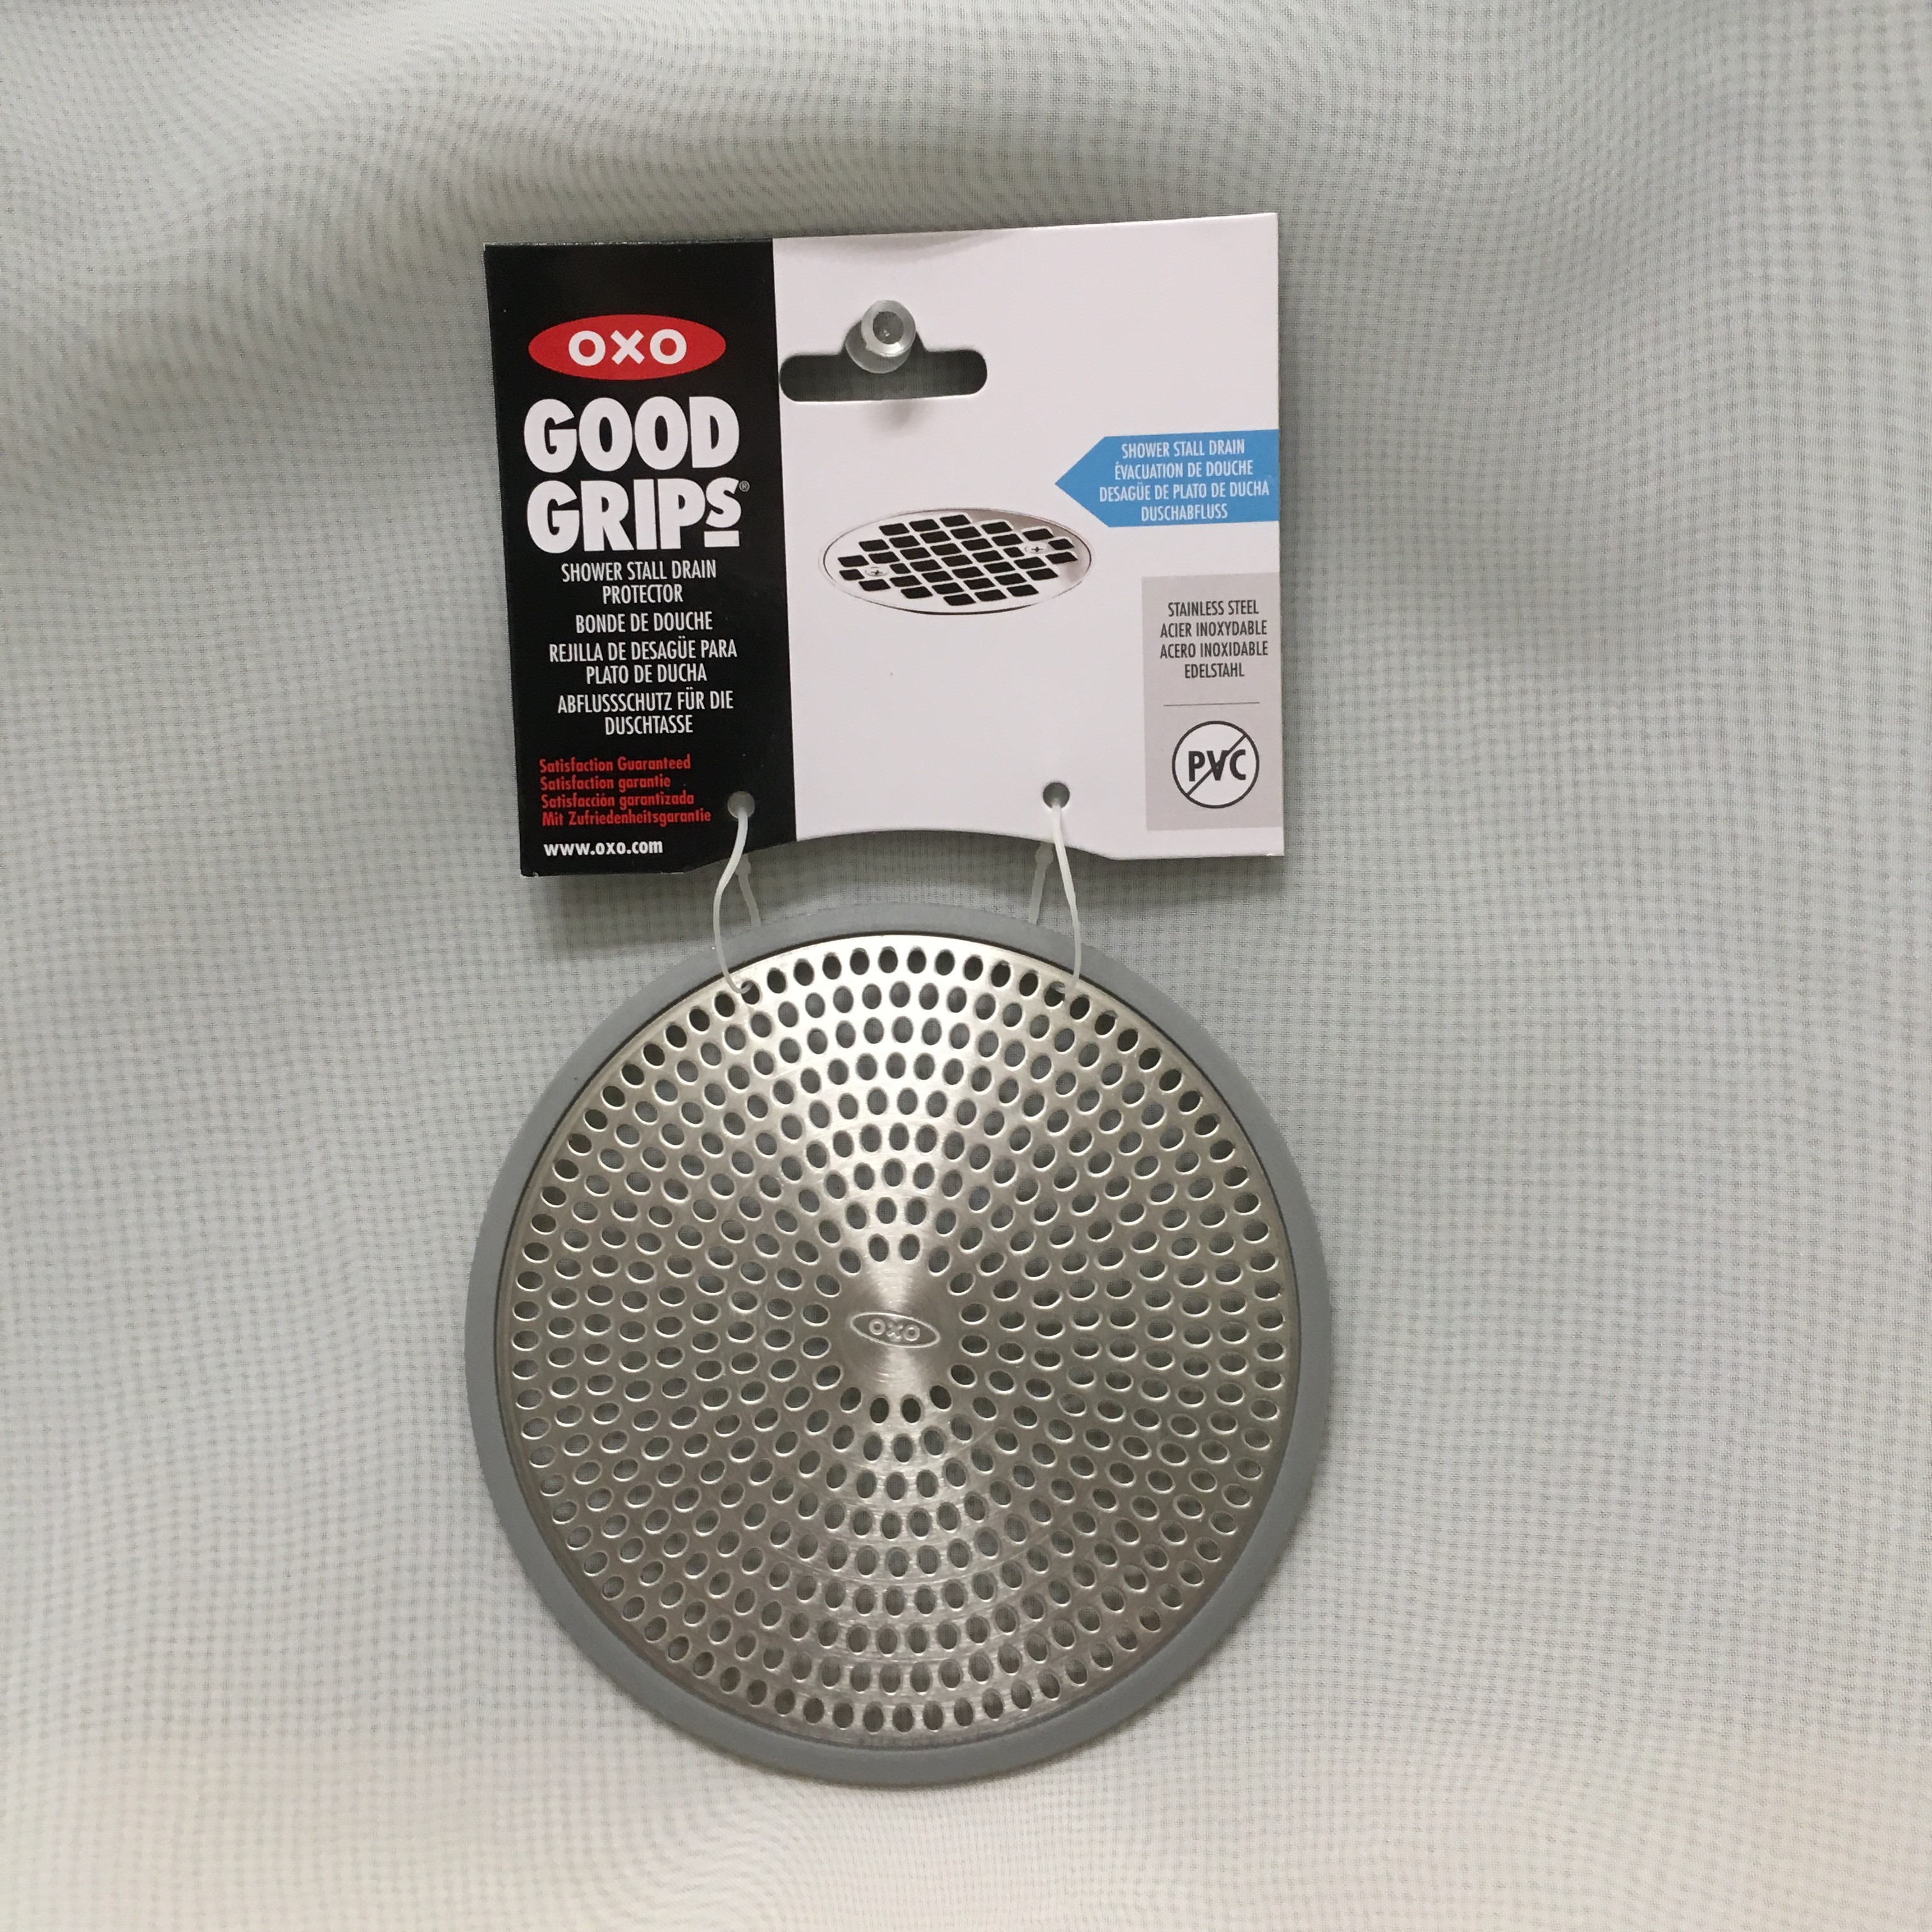 Oxo Shower Stall Drain Protector Kitchen Nook